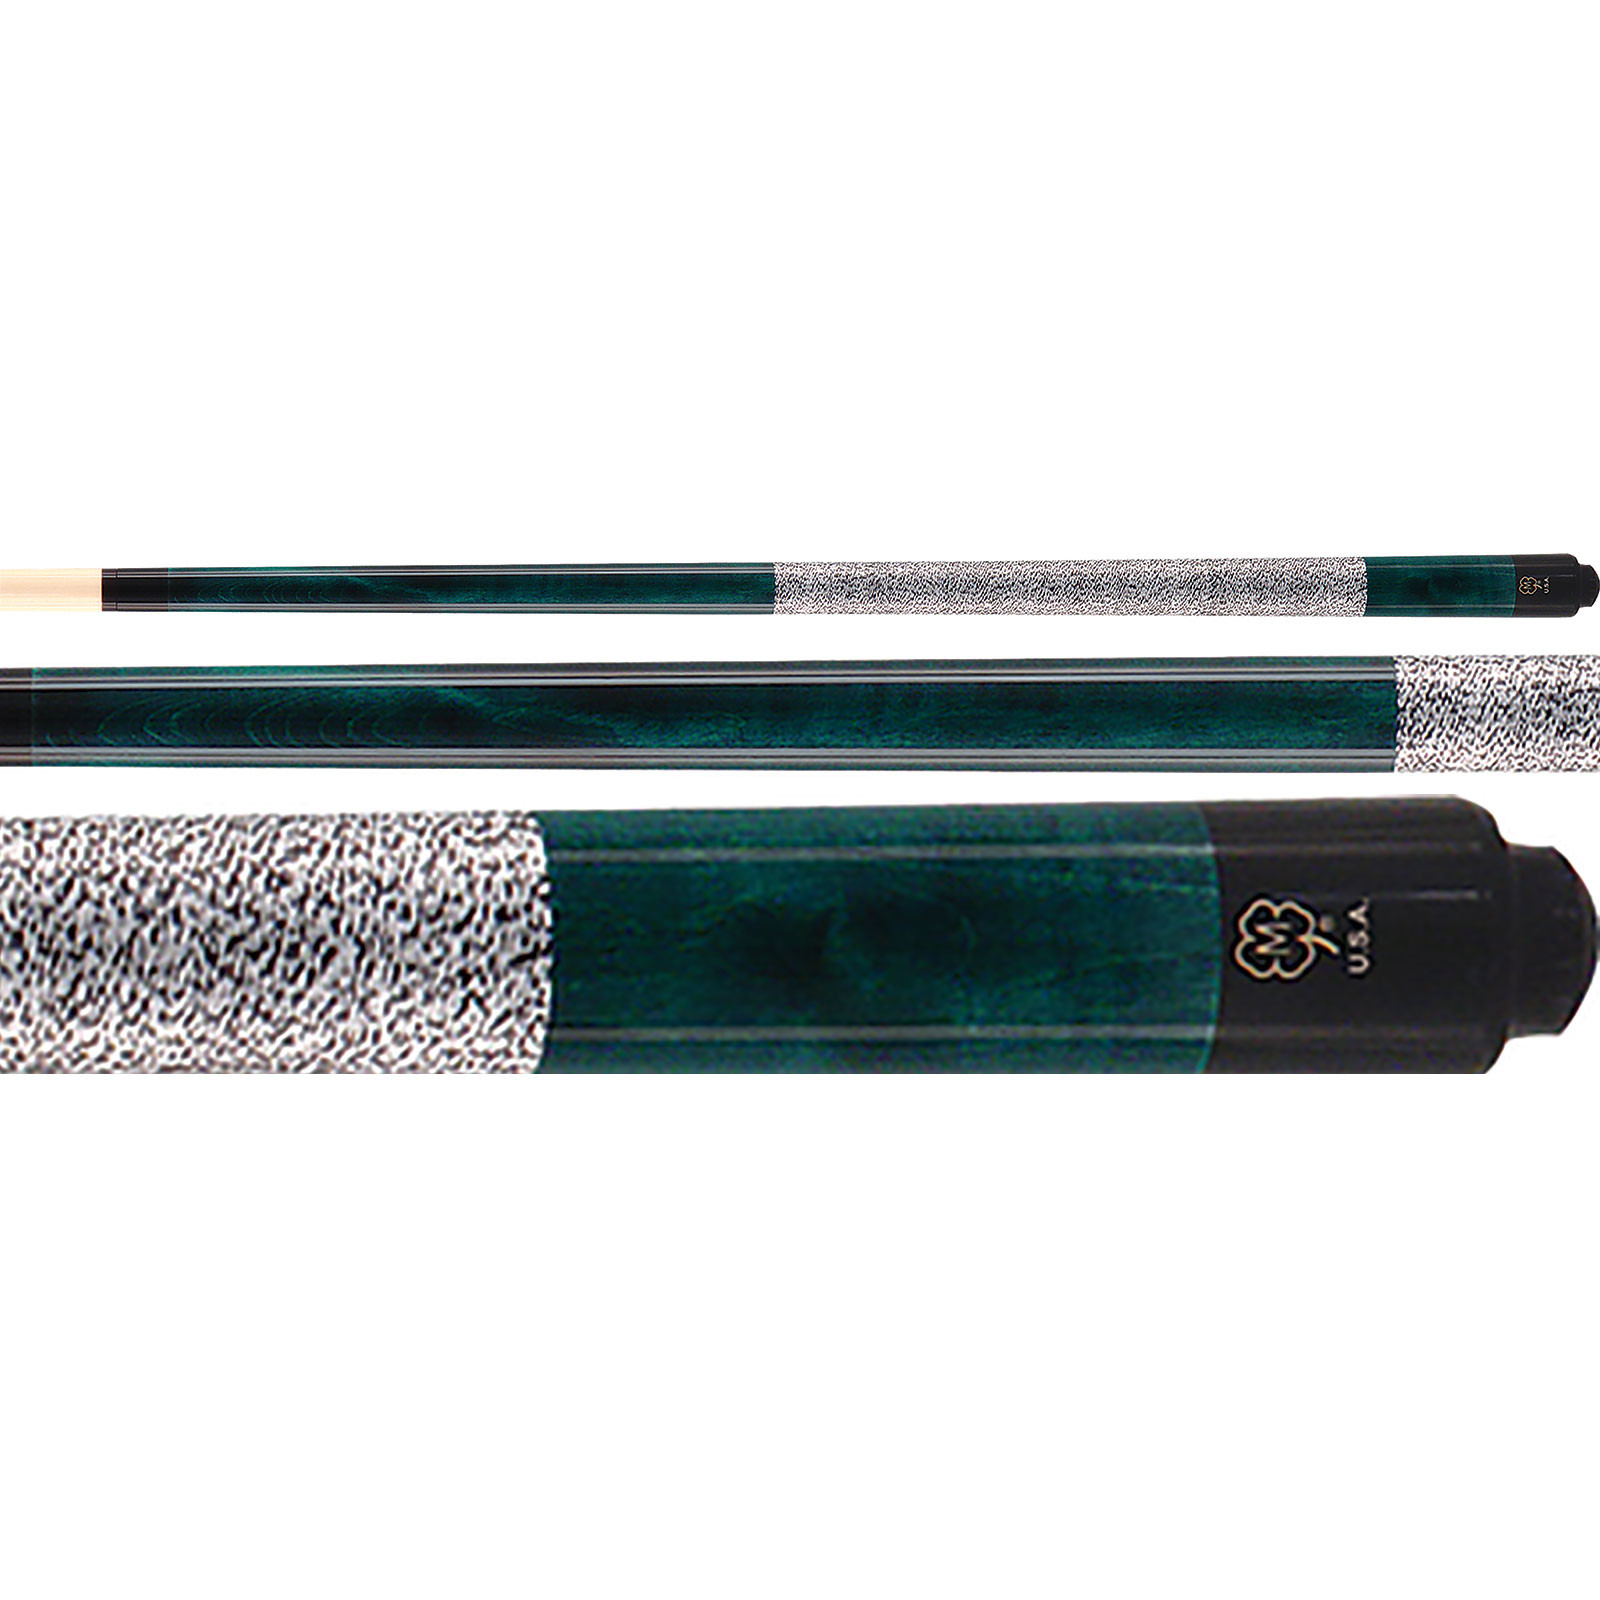 McDermott GS01 GS-Series Green Pool Cue